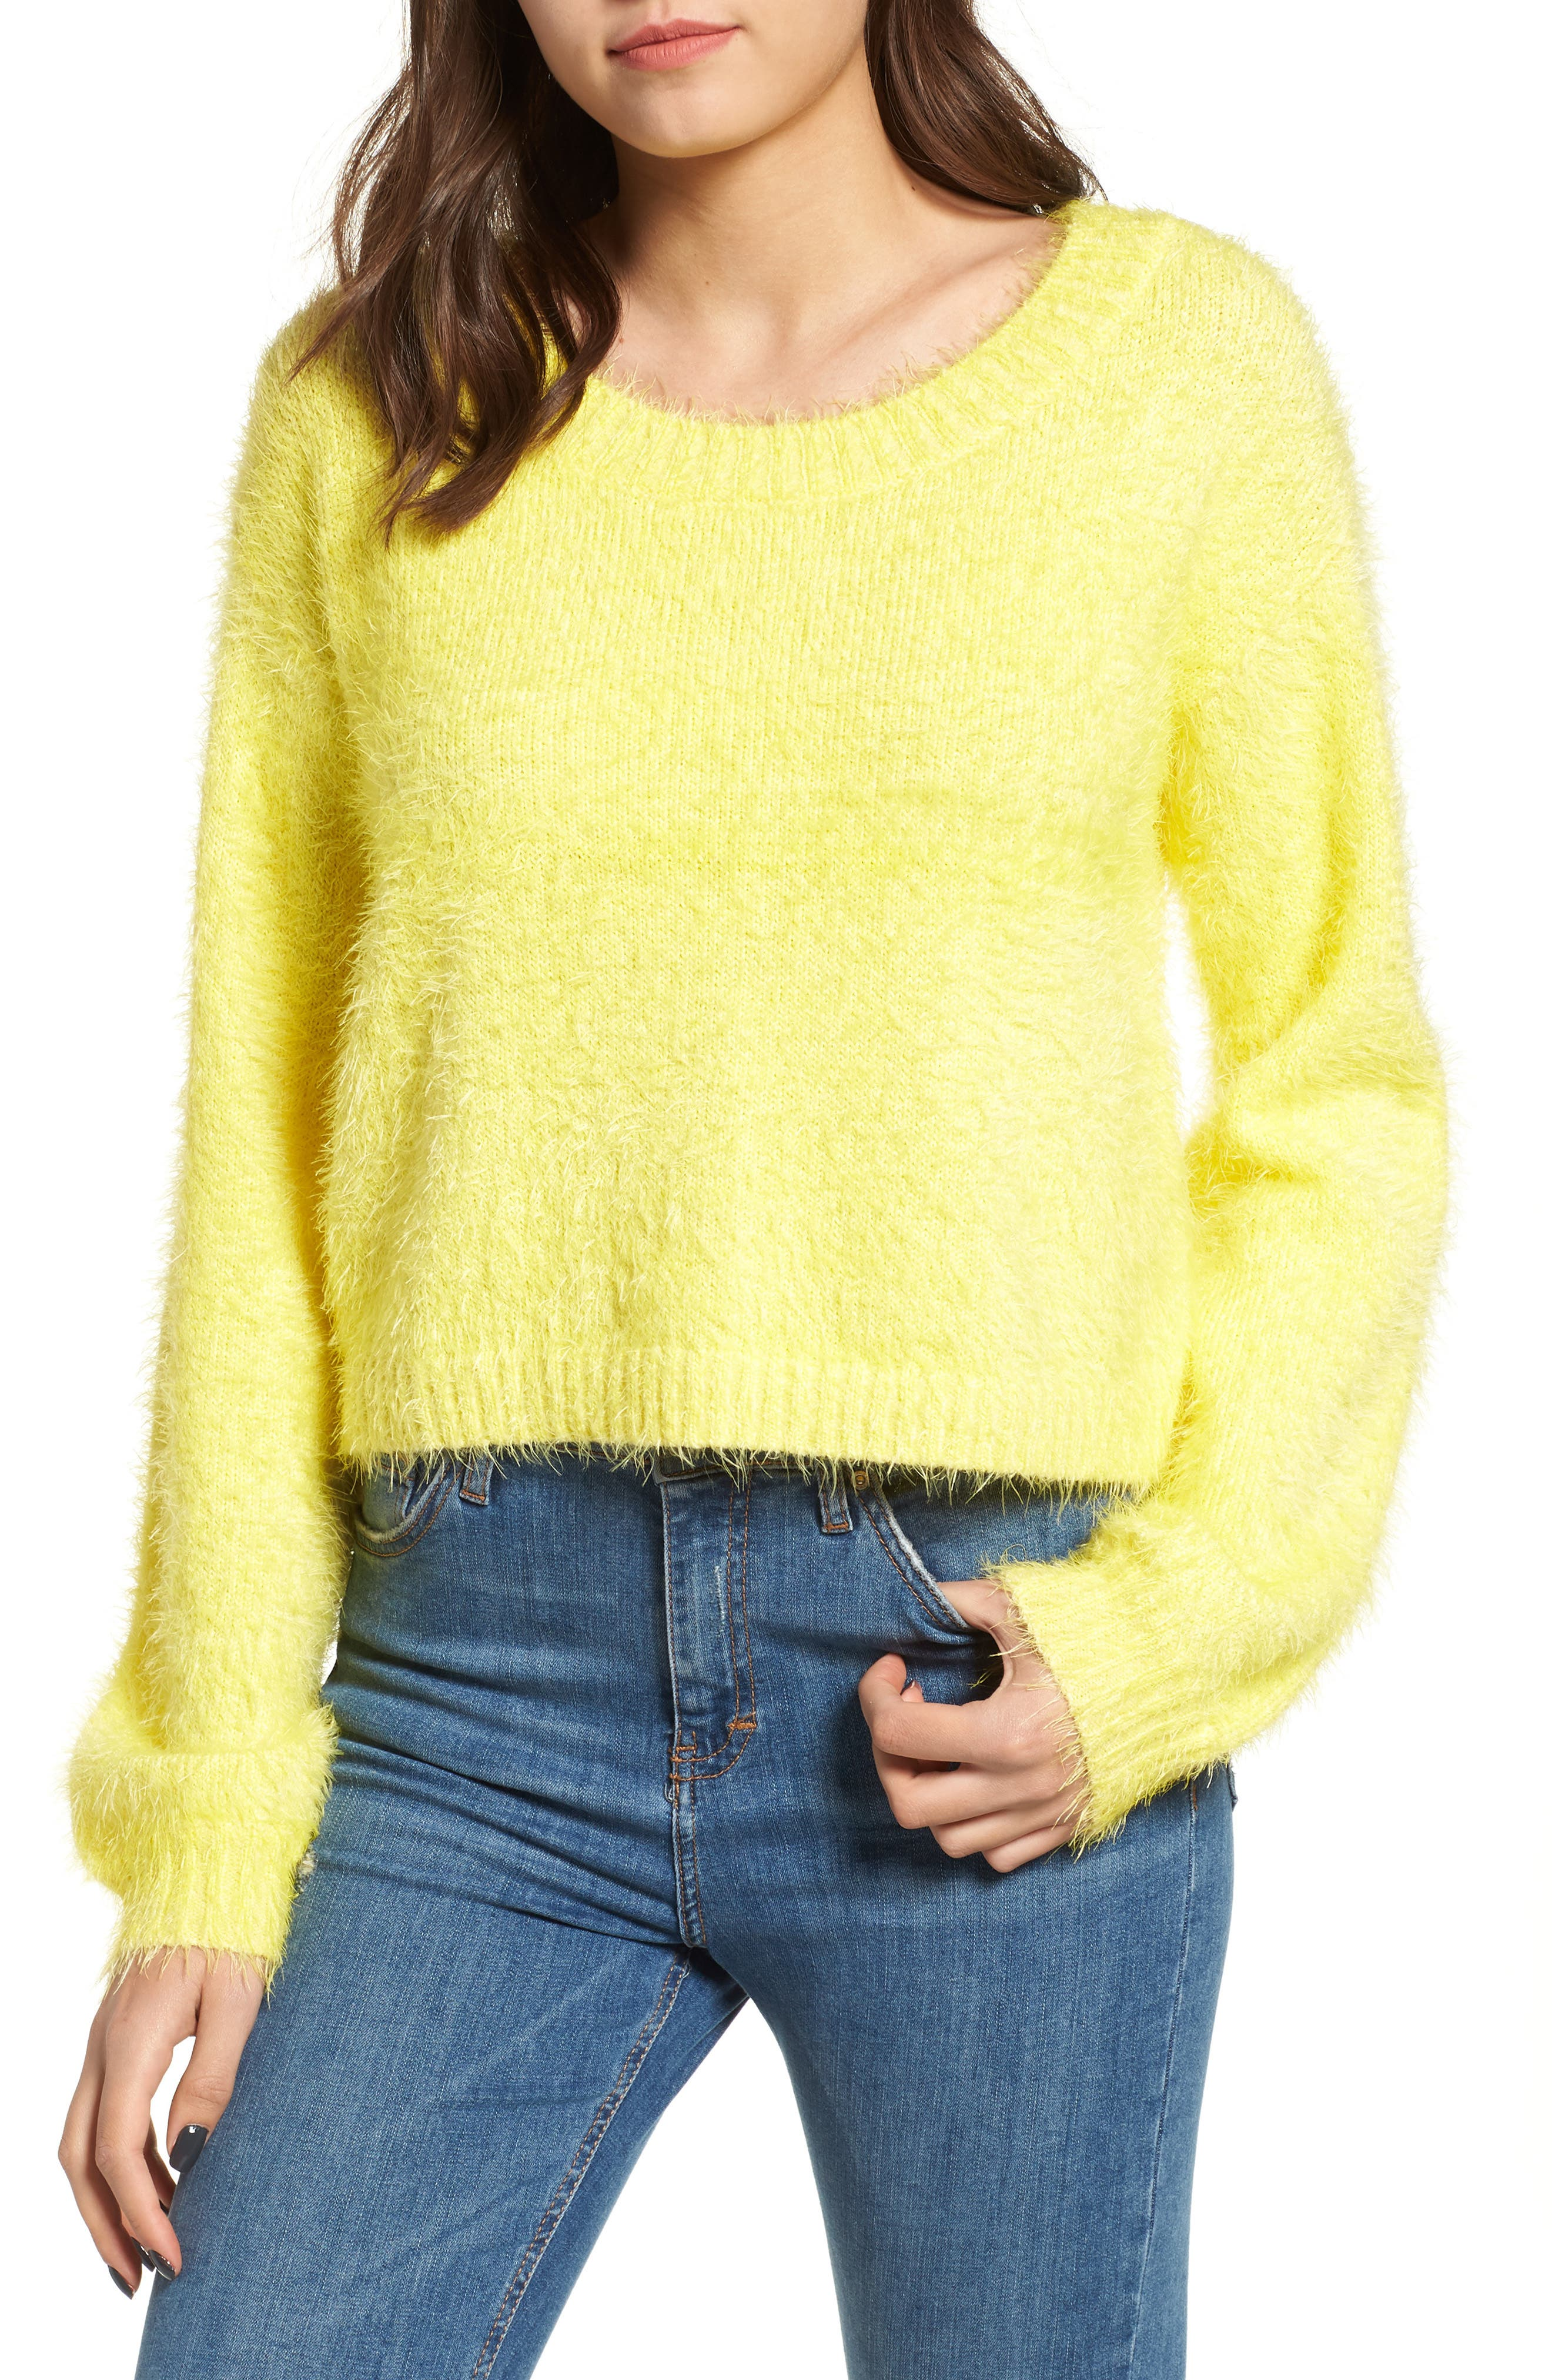 Clover Fields Chenille Sweater,                         Main,                         color, MARIGOLD